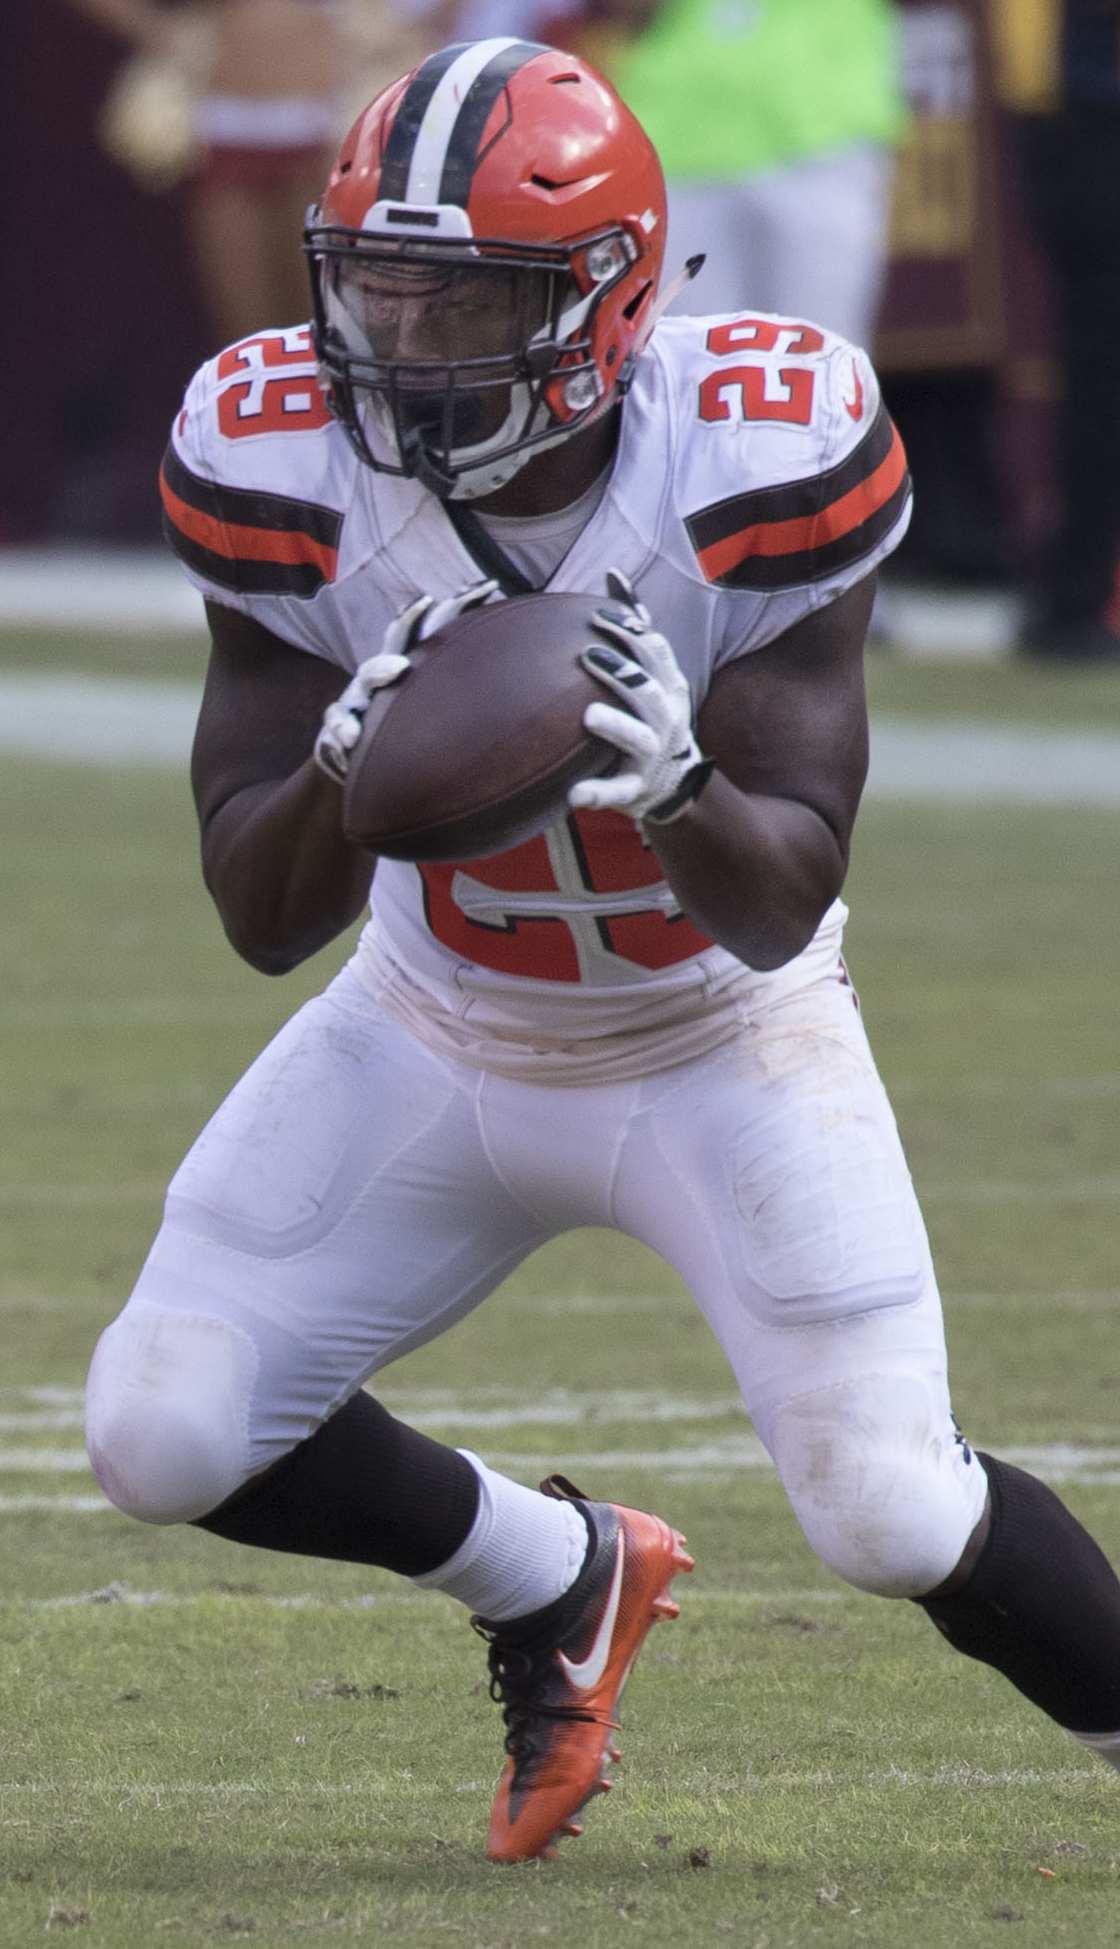 604056b12d92 Duke Johnson - Wikipedia